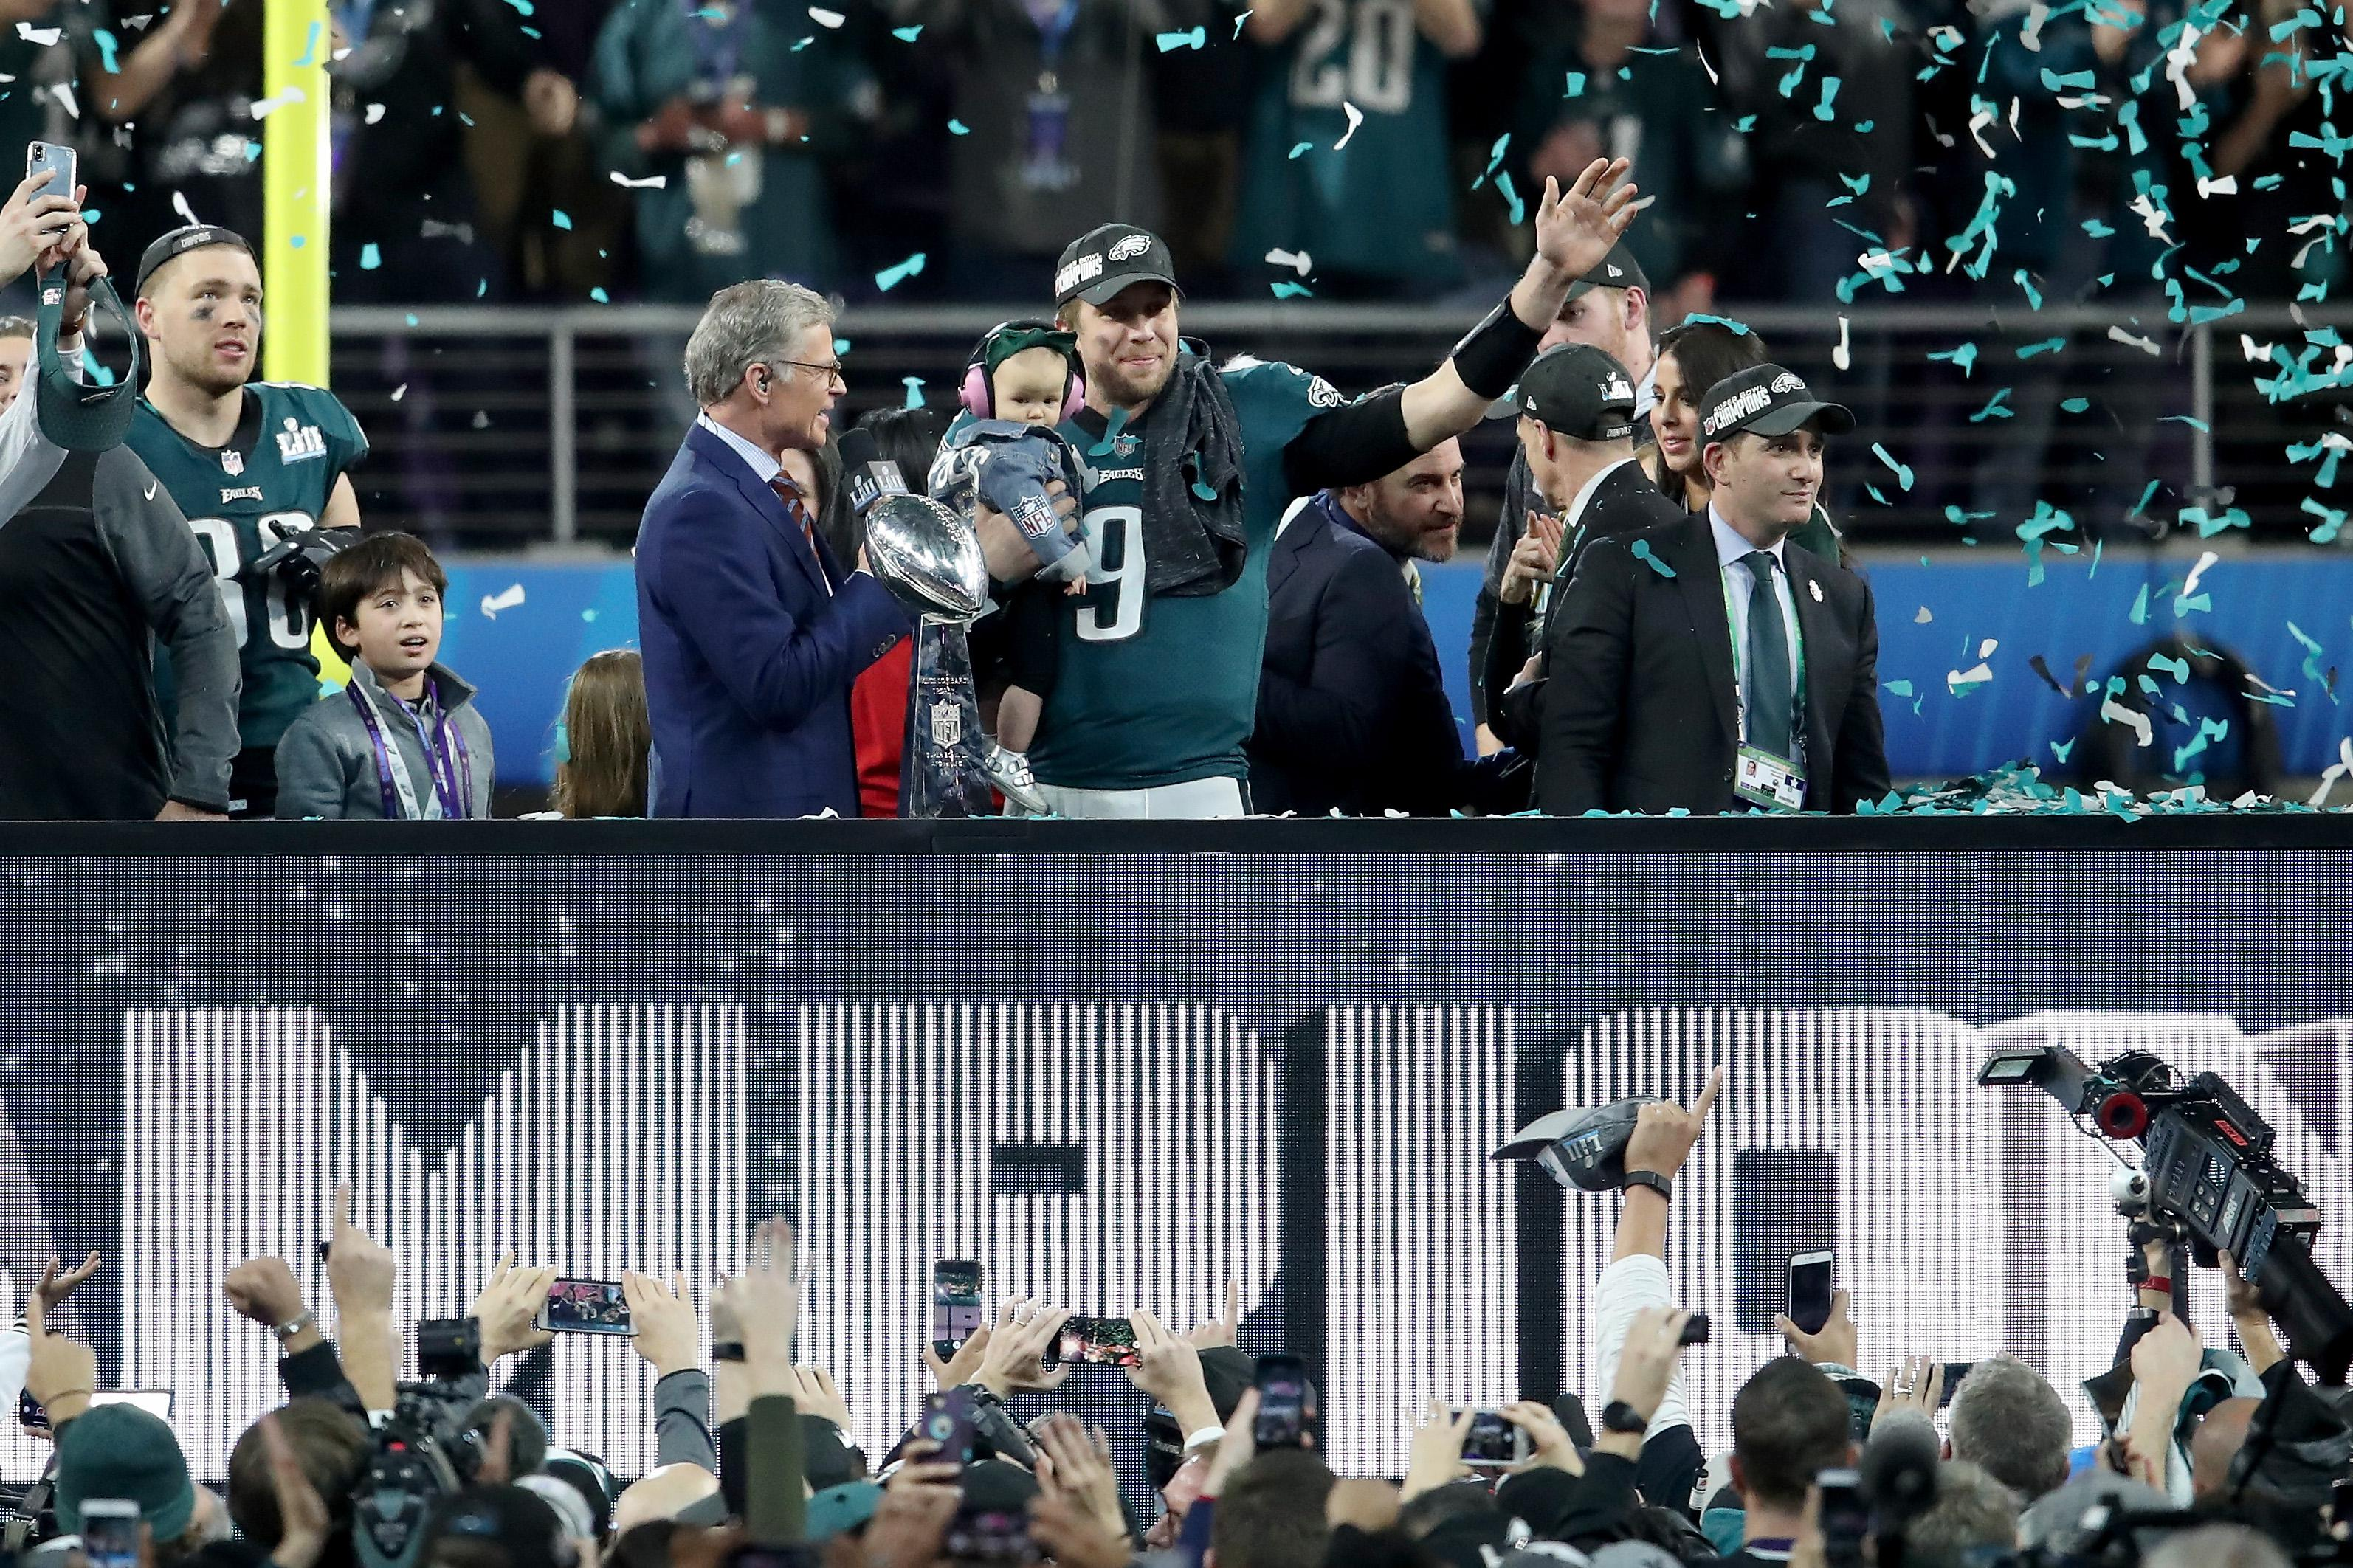 Nick Foles was named Super Bowl MVP after the stunning victory